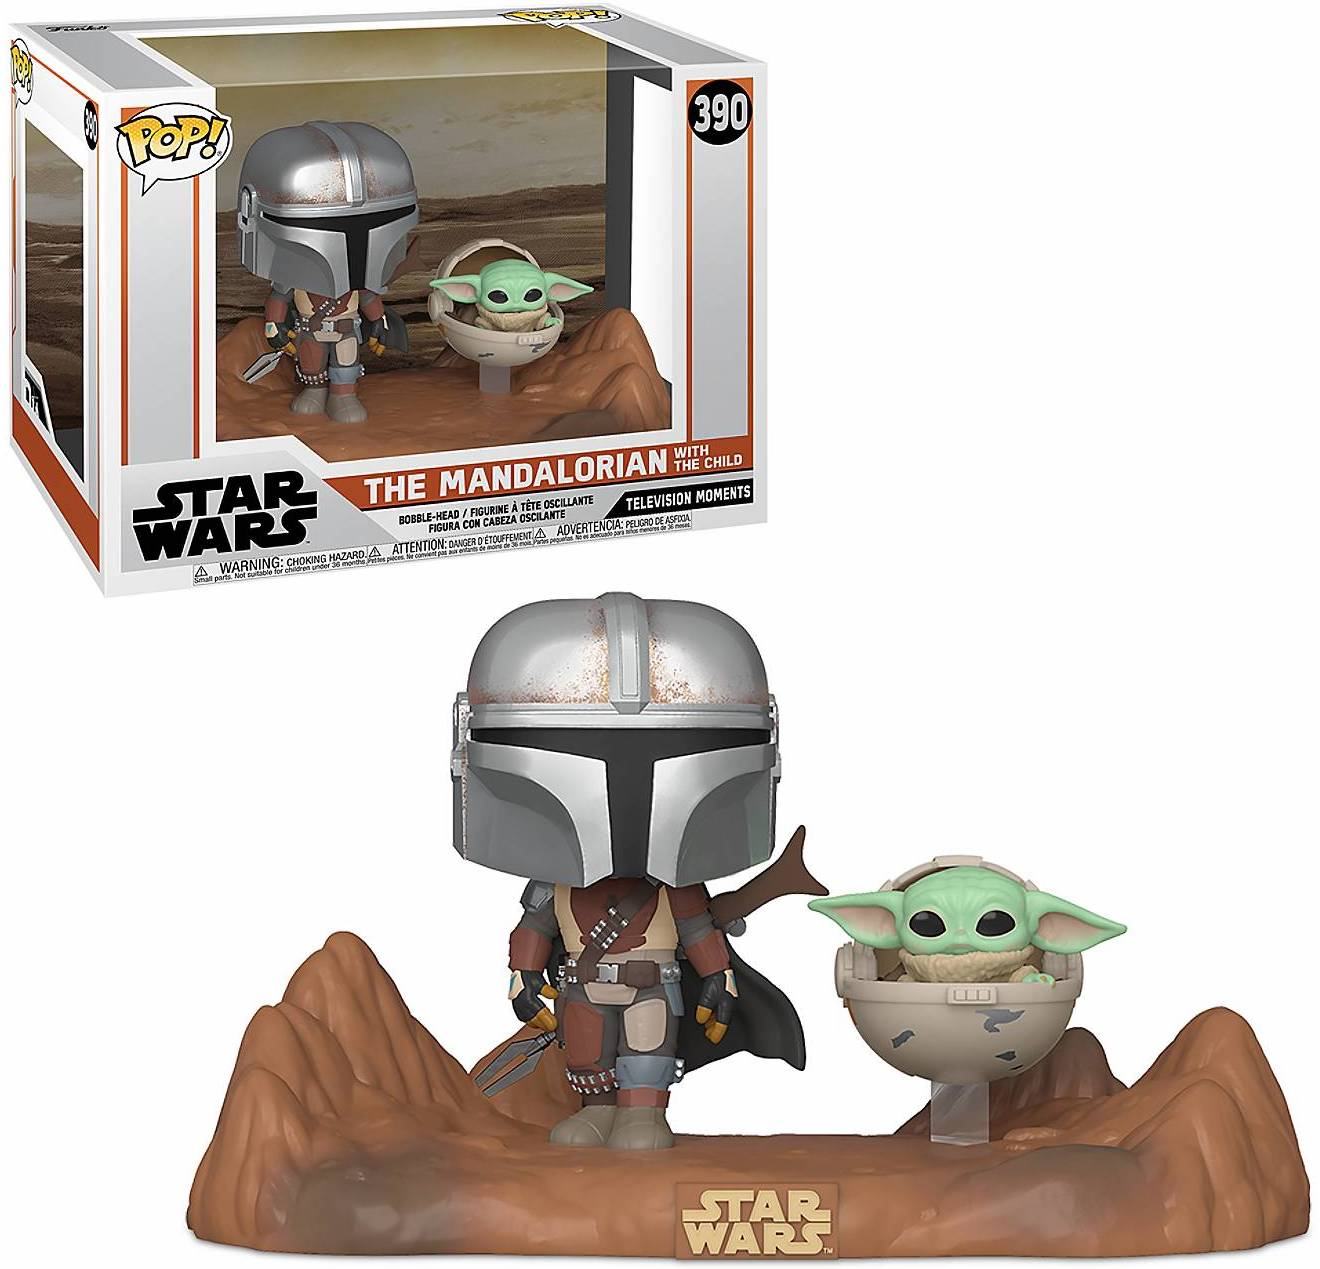 Star Wars: The Mandalorian Mando and The Child Pop! Vinyl Bobble Head Figure